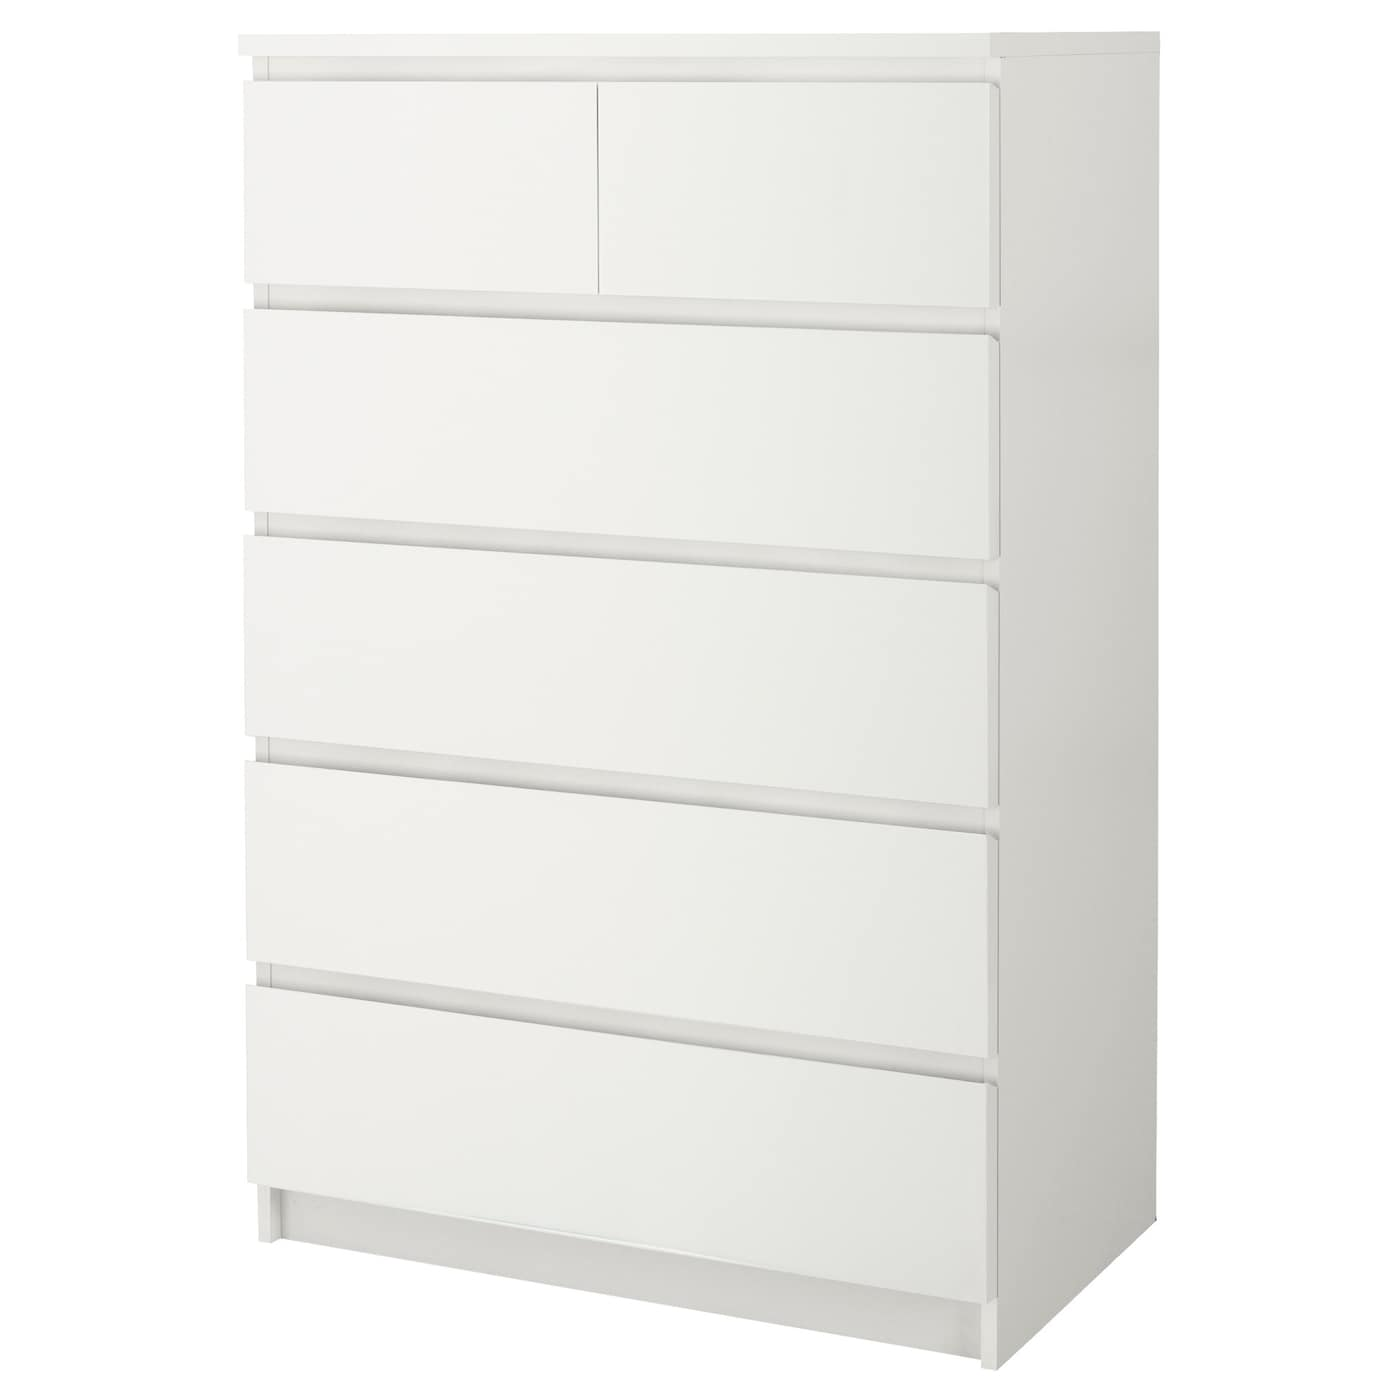 Ikea Malm Chest Of 6 Drawers Smooth Running With Pull Out Stop